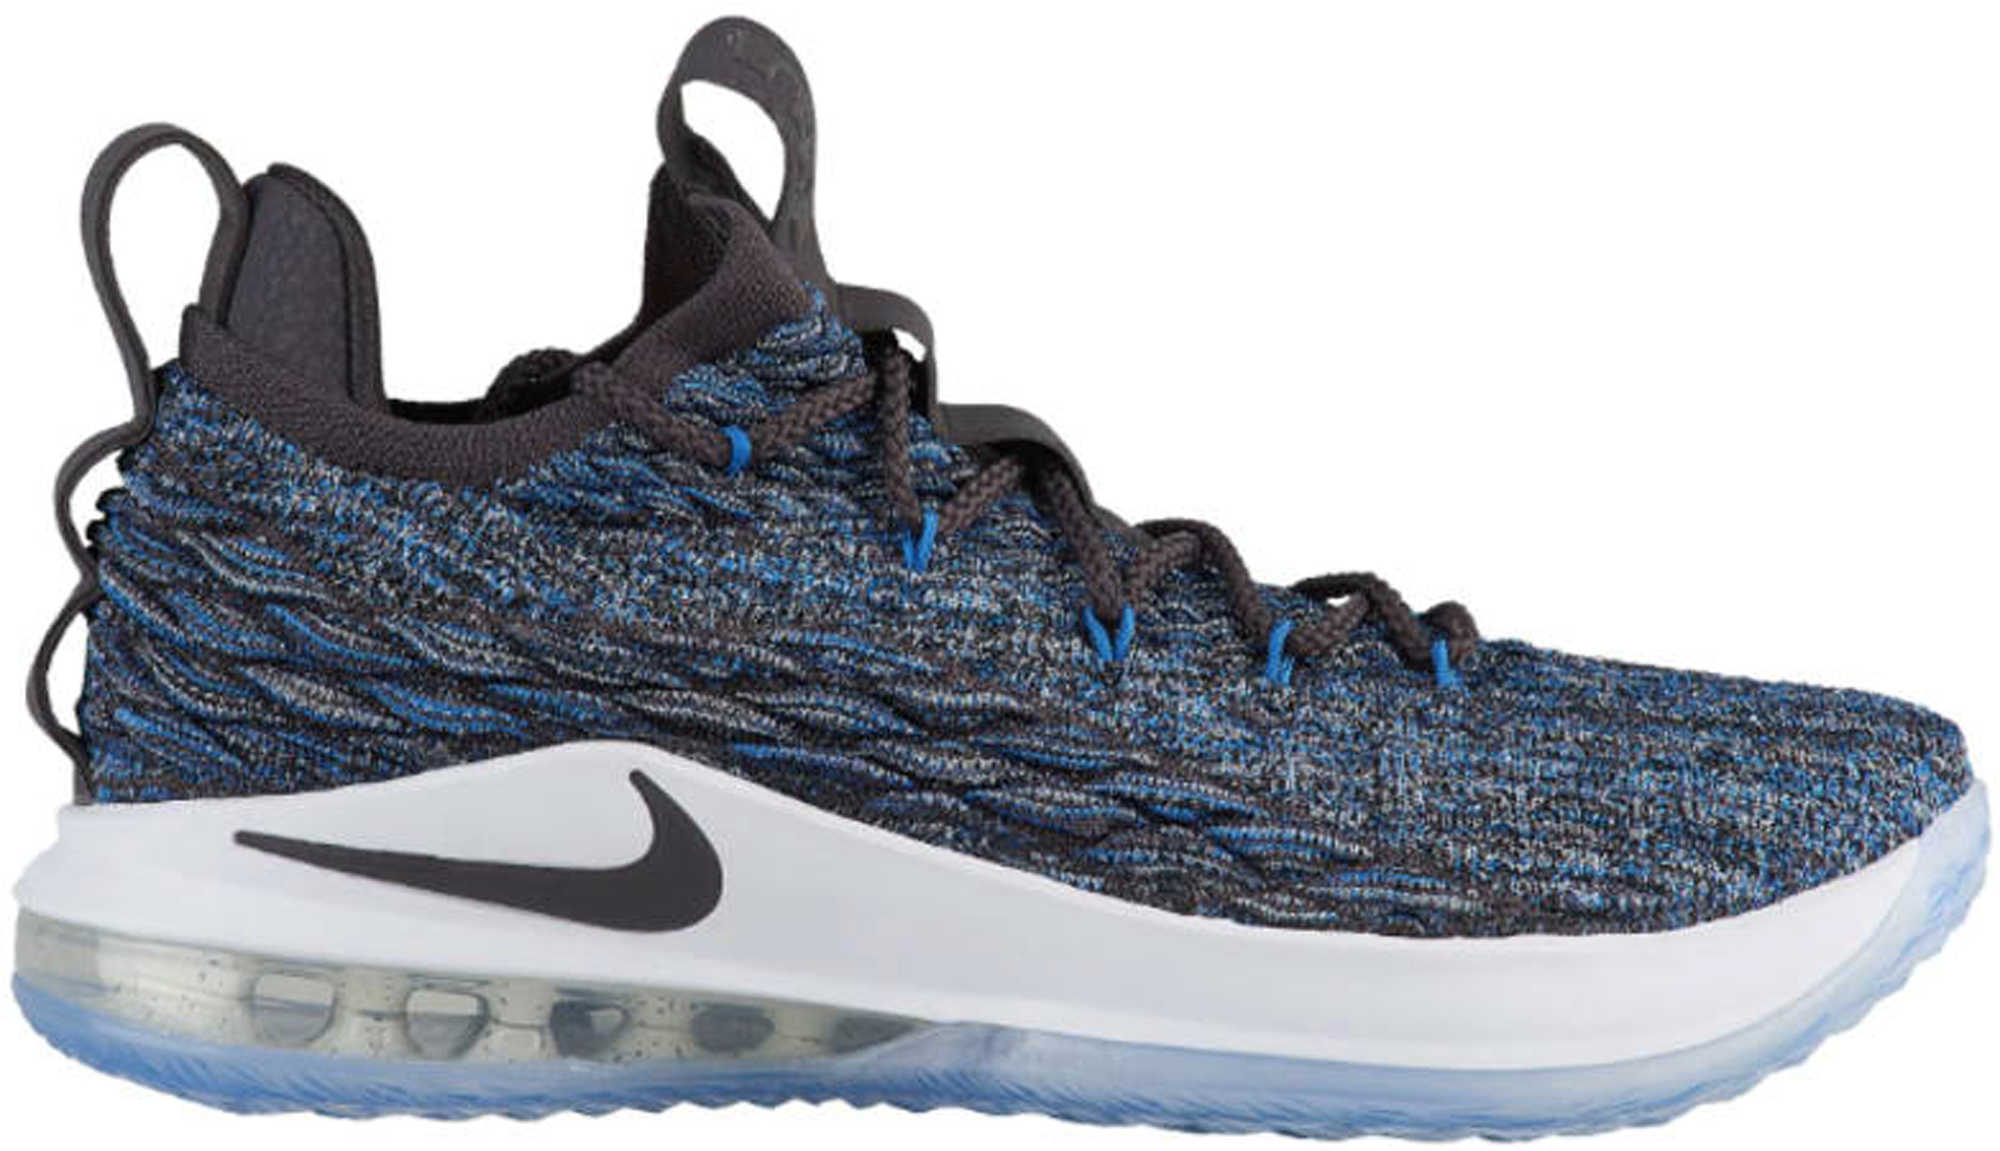 Nike LeBron 15 Low Signal Blue